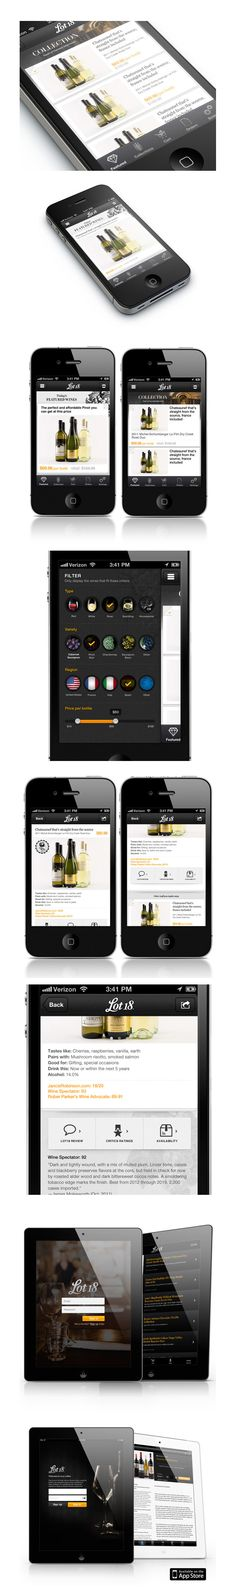 Lot18 Mobile on the Behance Network